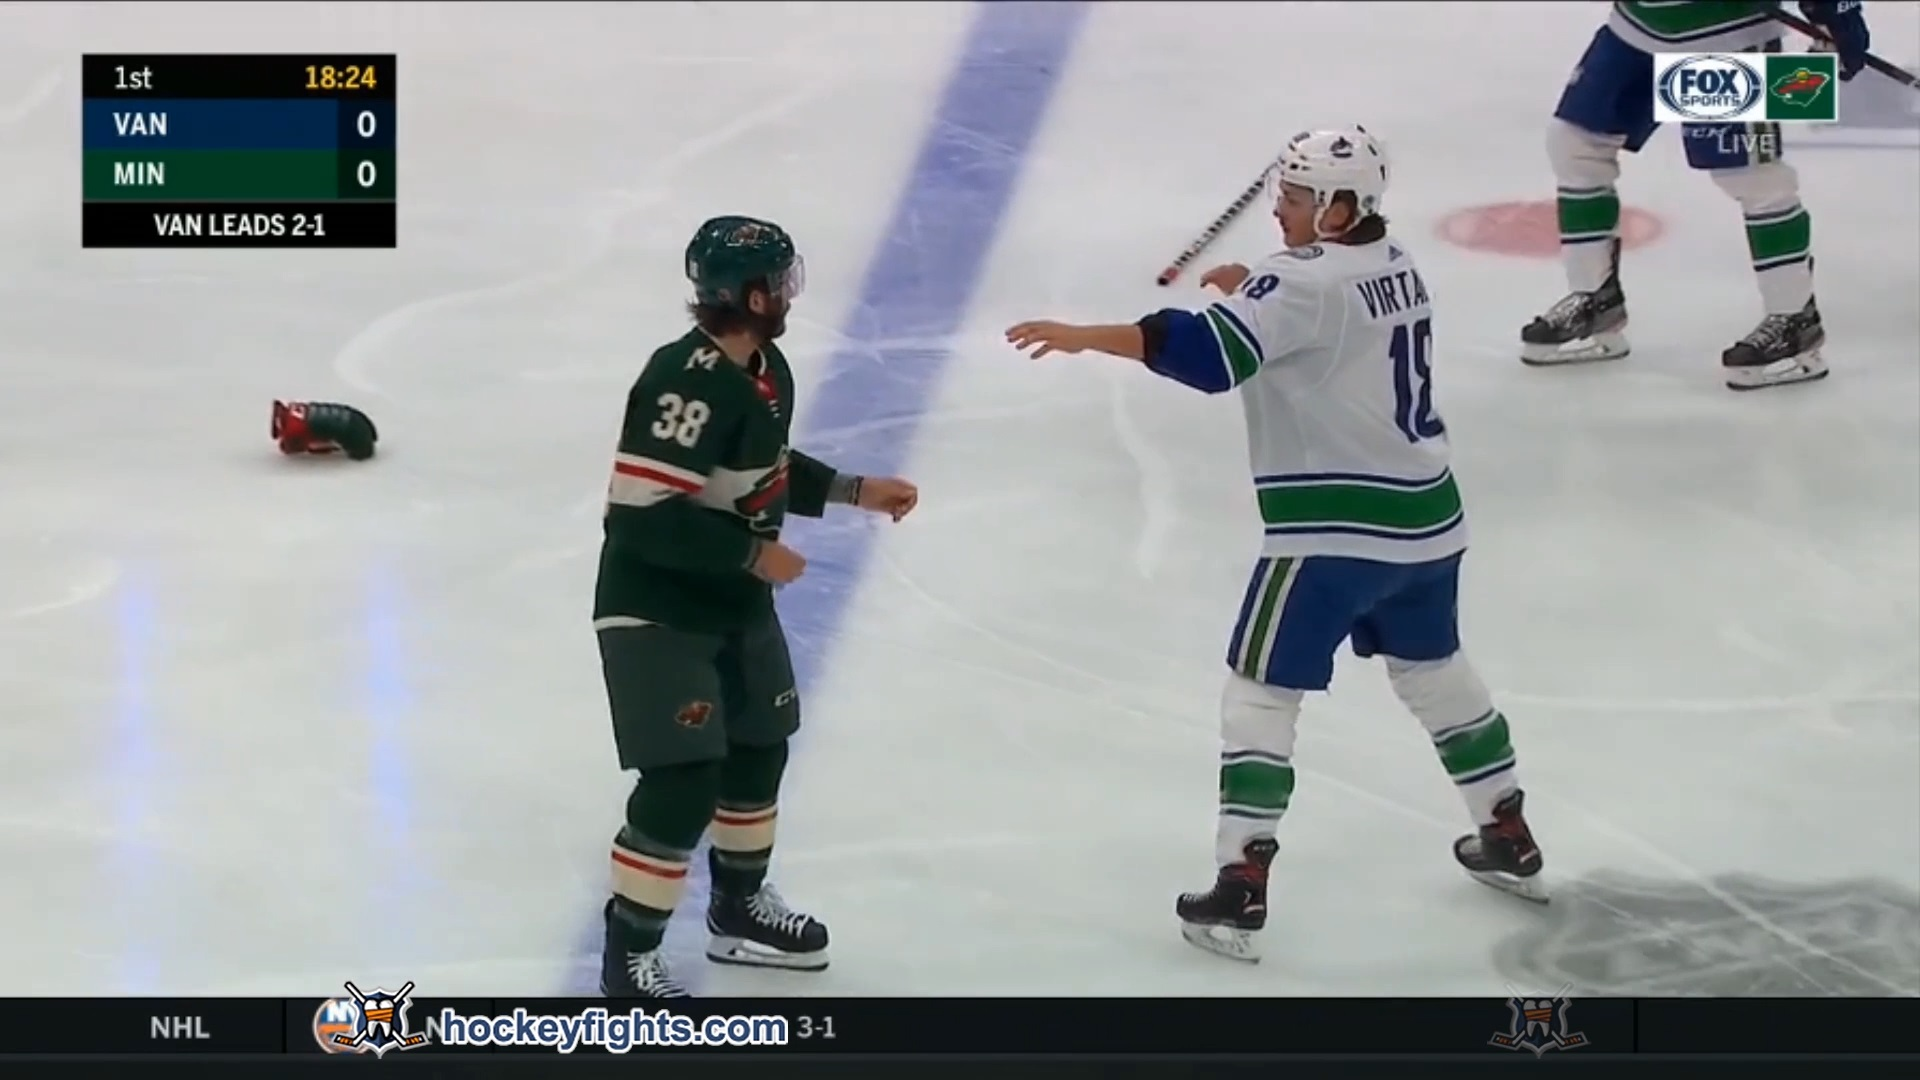 Ryan Hartman vs. Jake Virtanen